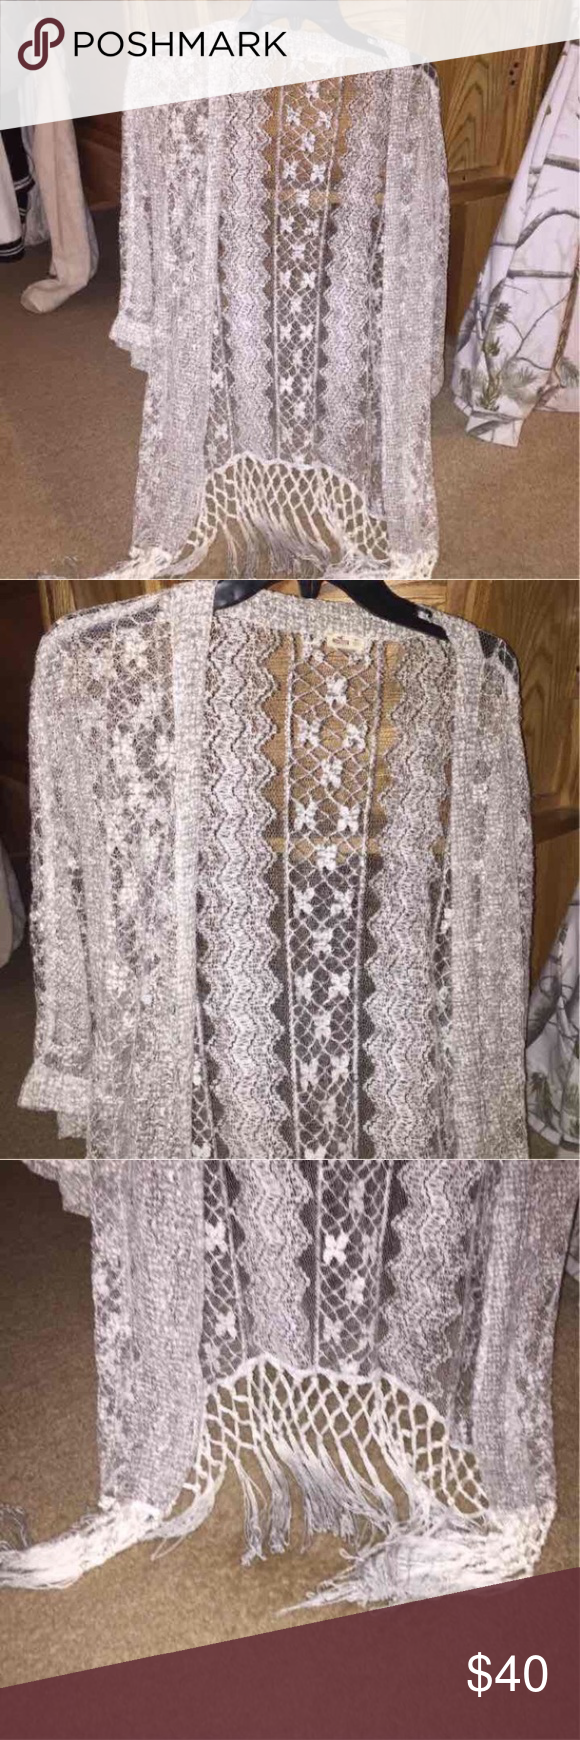 Hollister Gray/Silver Lace Fringe Cardigan | Hollister, Pacsun and ...